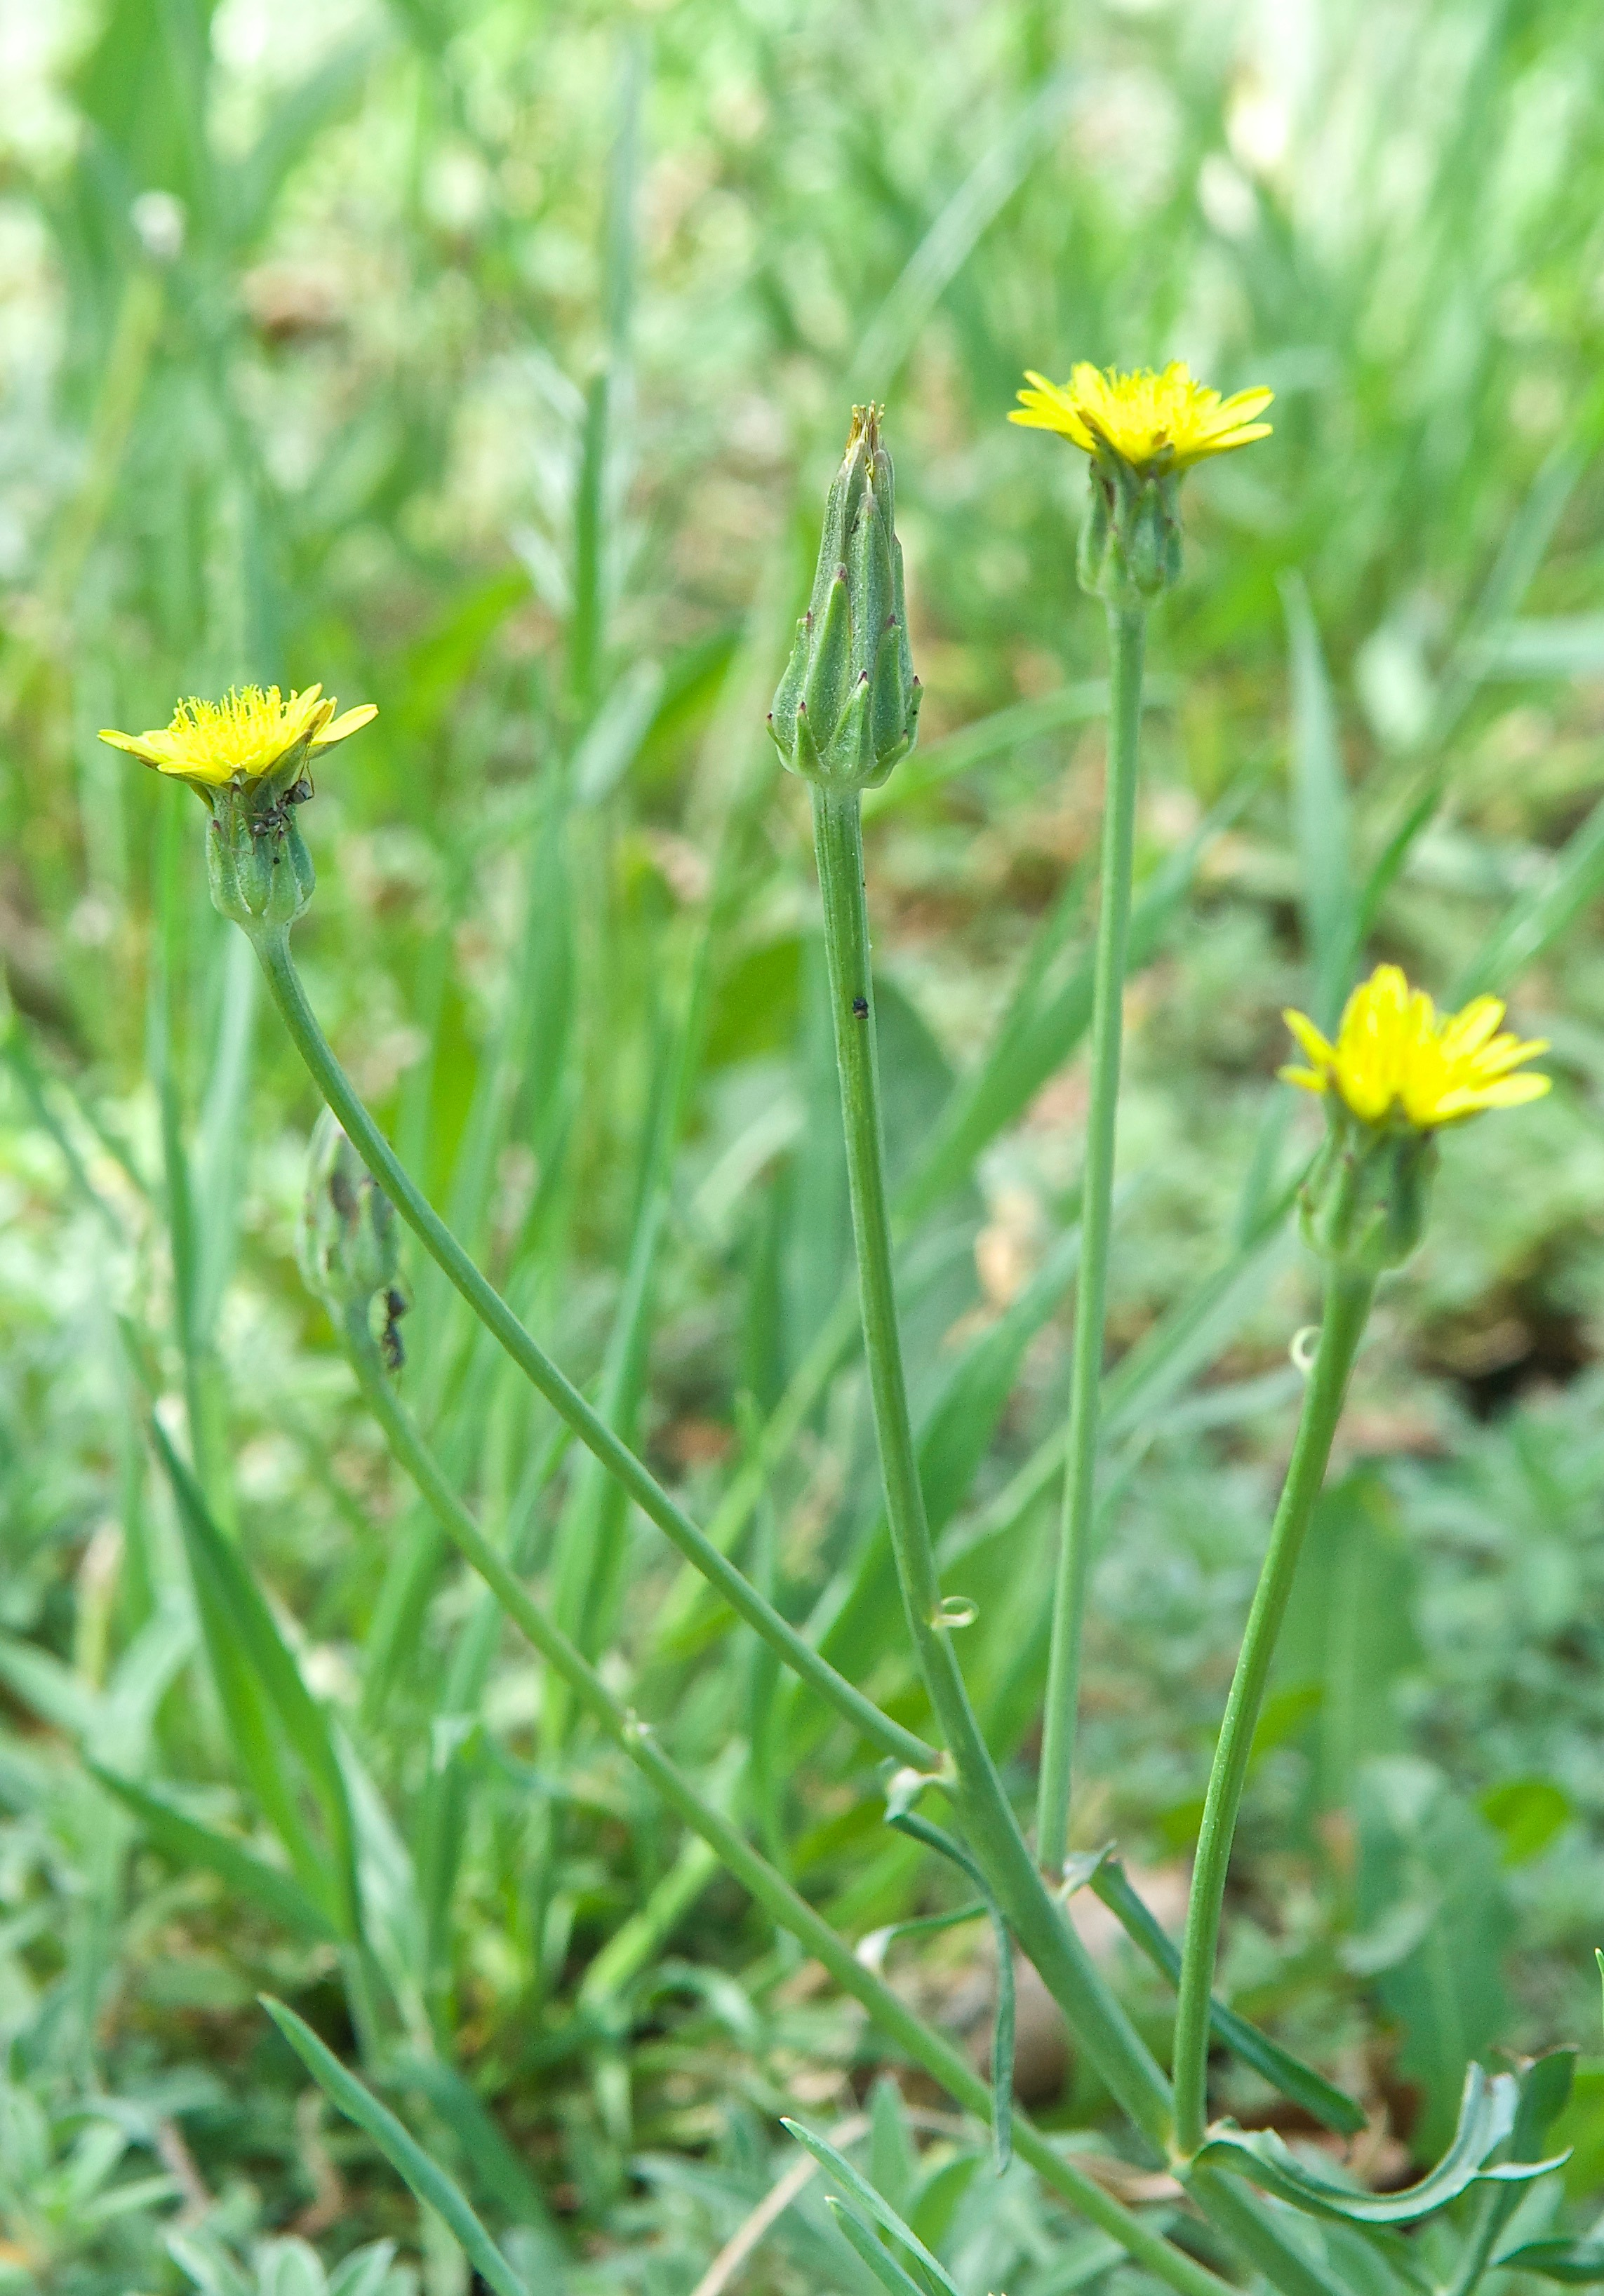 False salsify (Scorzonera laciniata) (Introduced)